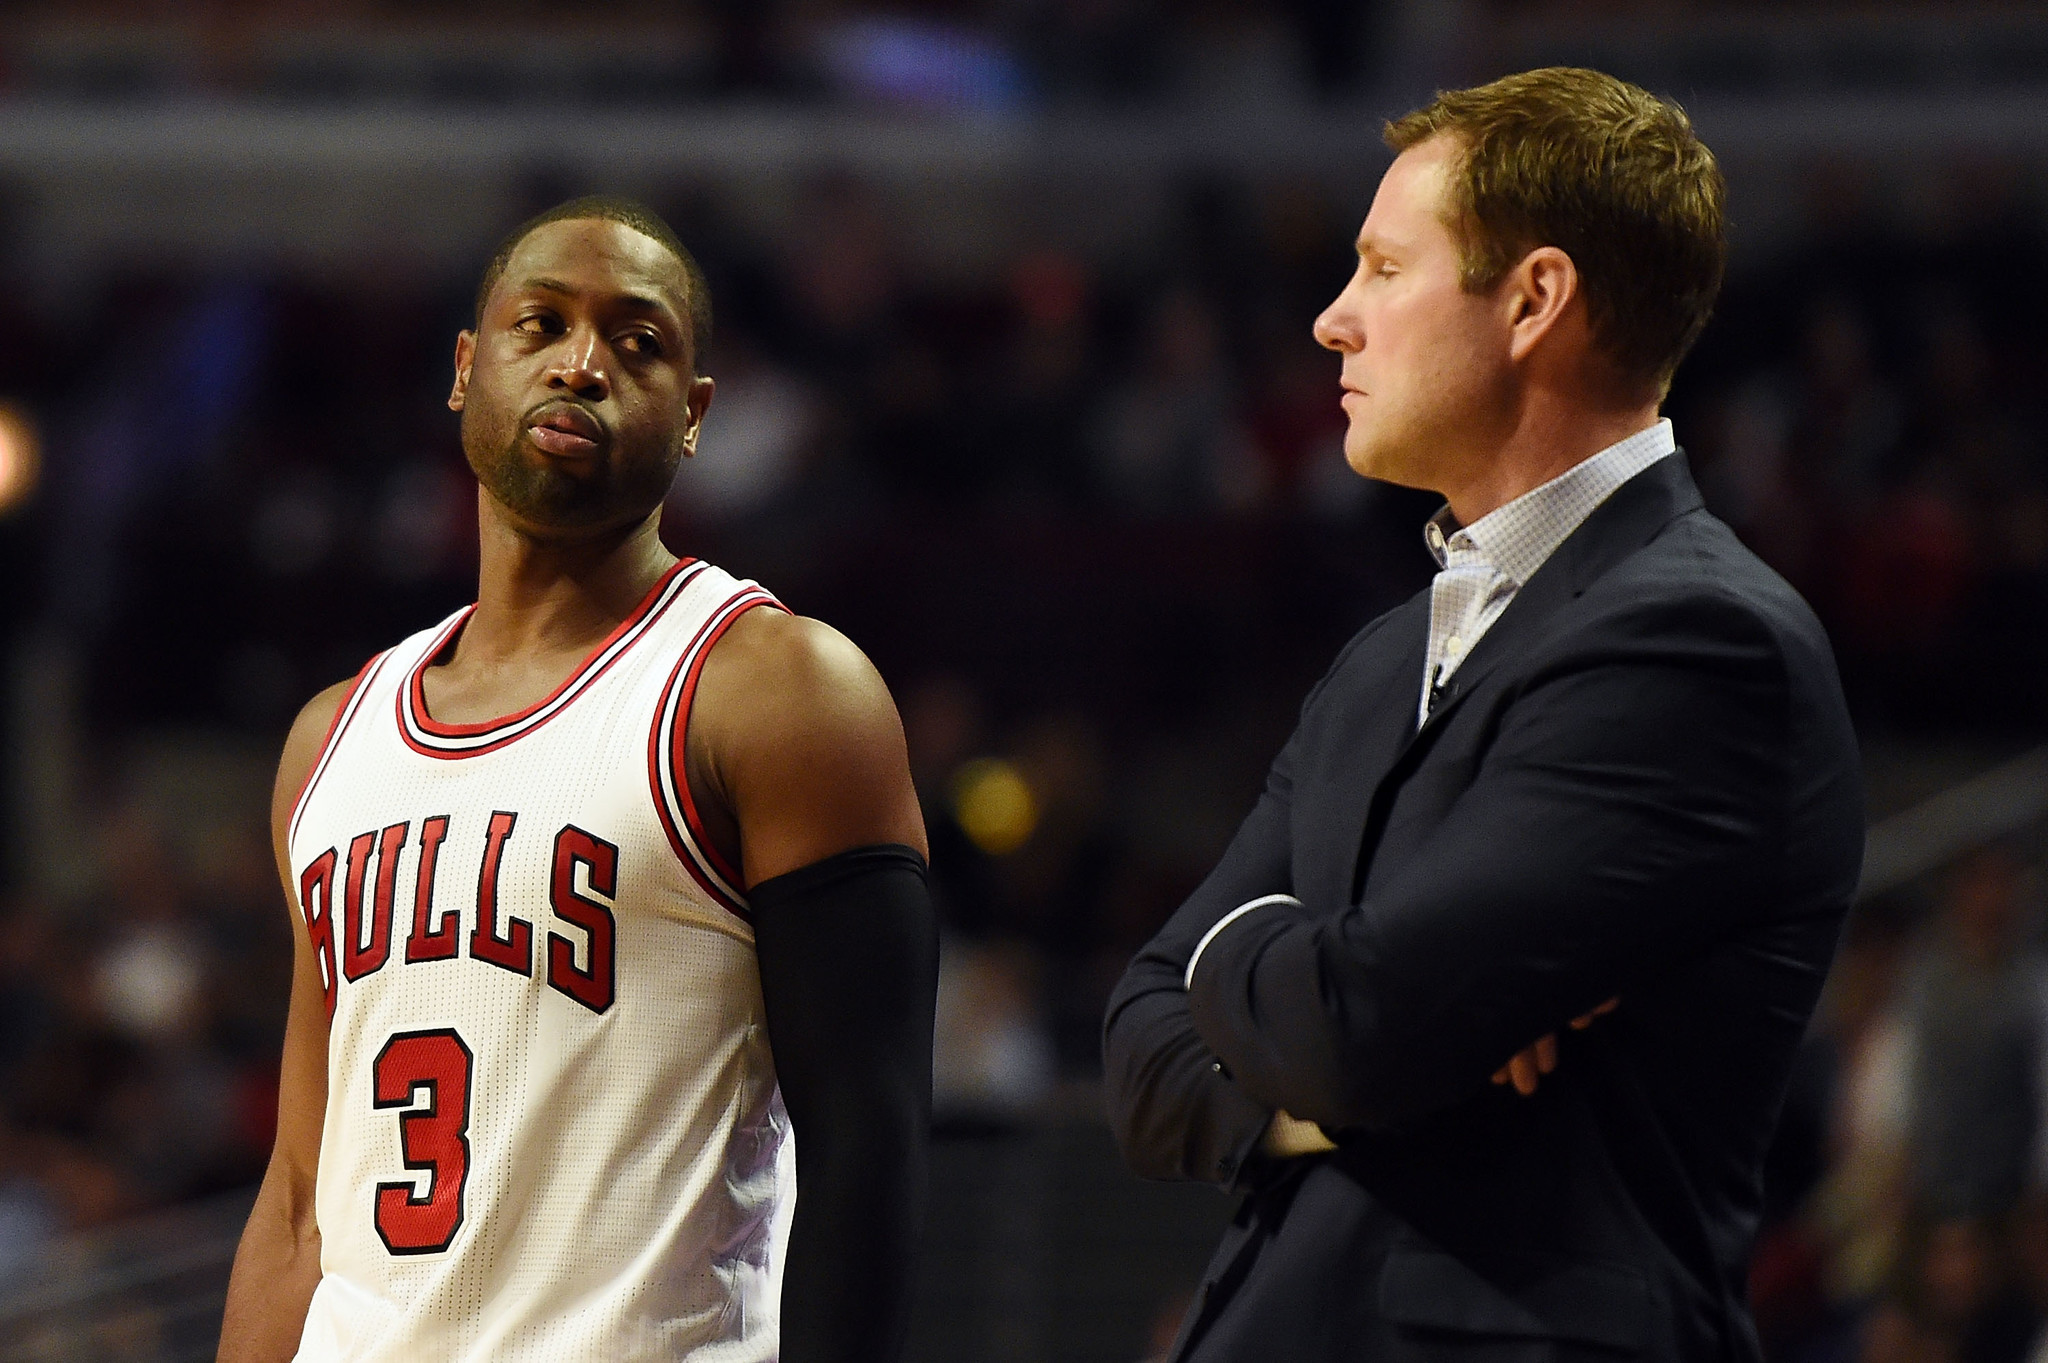 Ct-bulls-pacers-preview-spt-1029-20161028